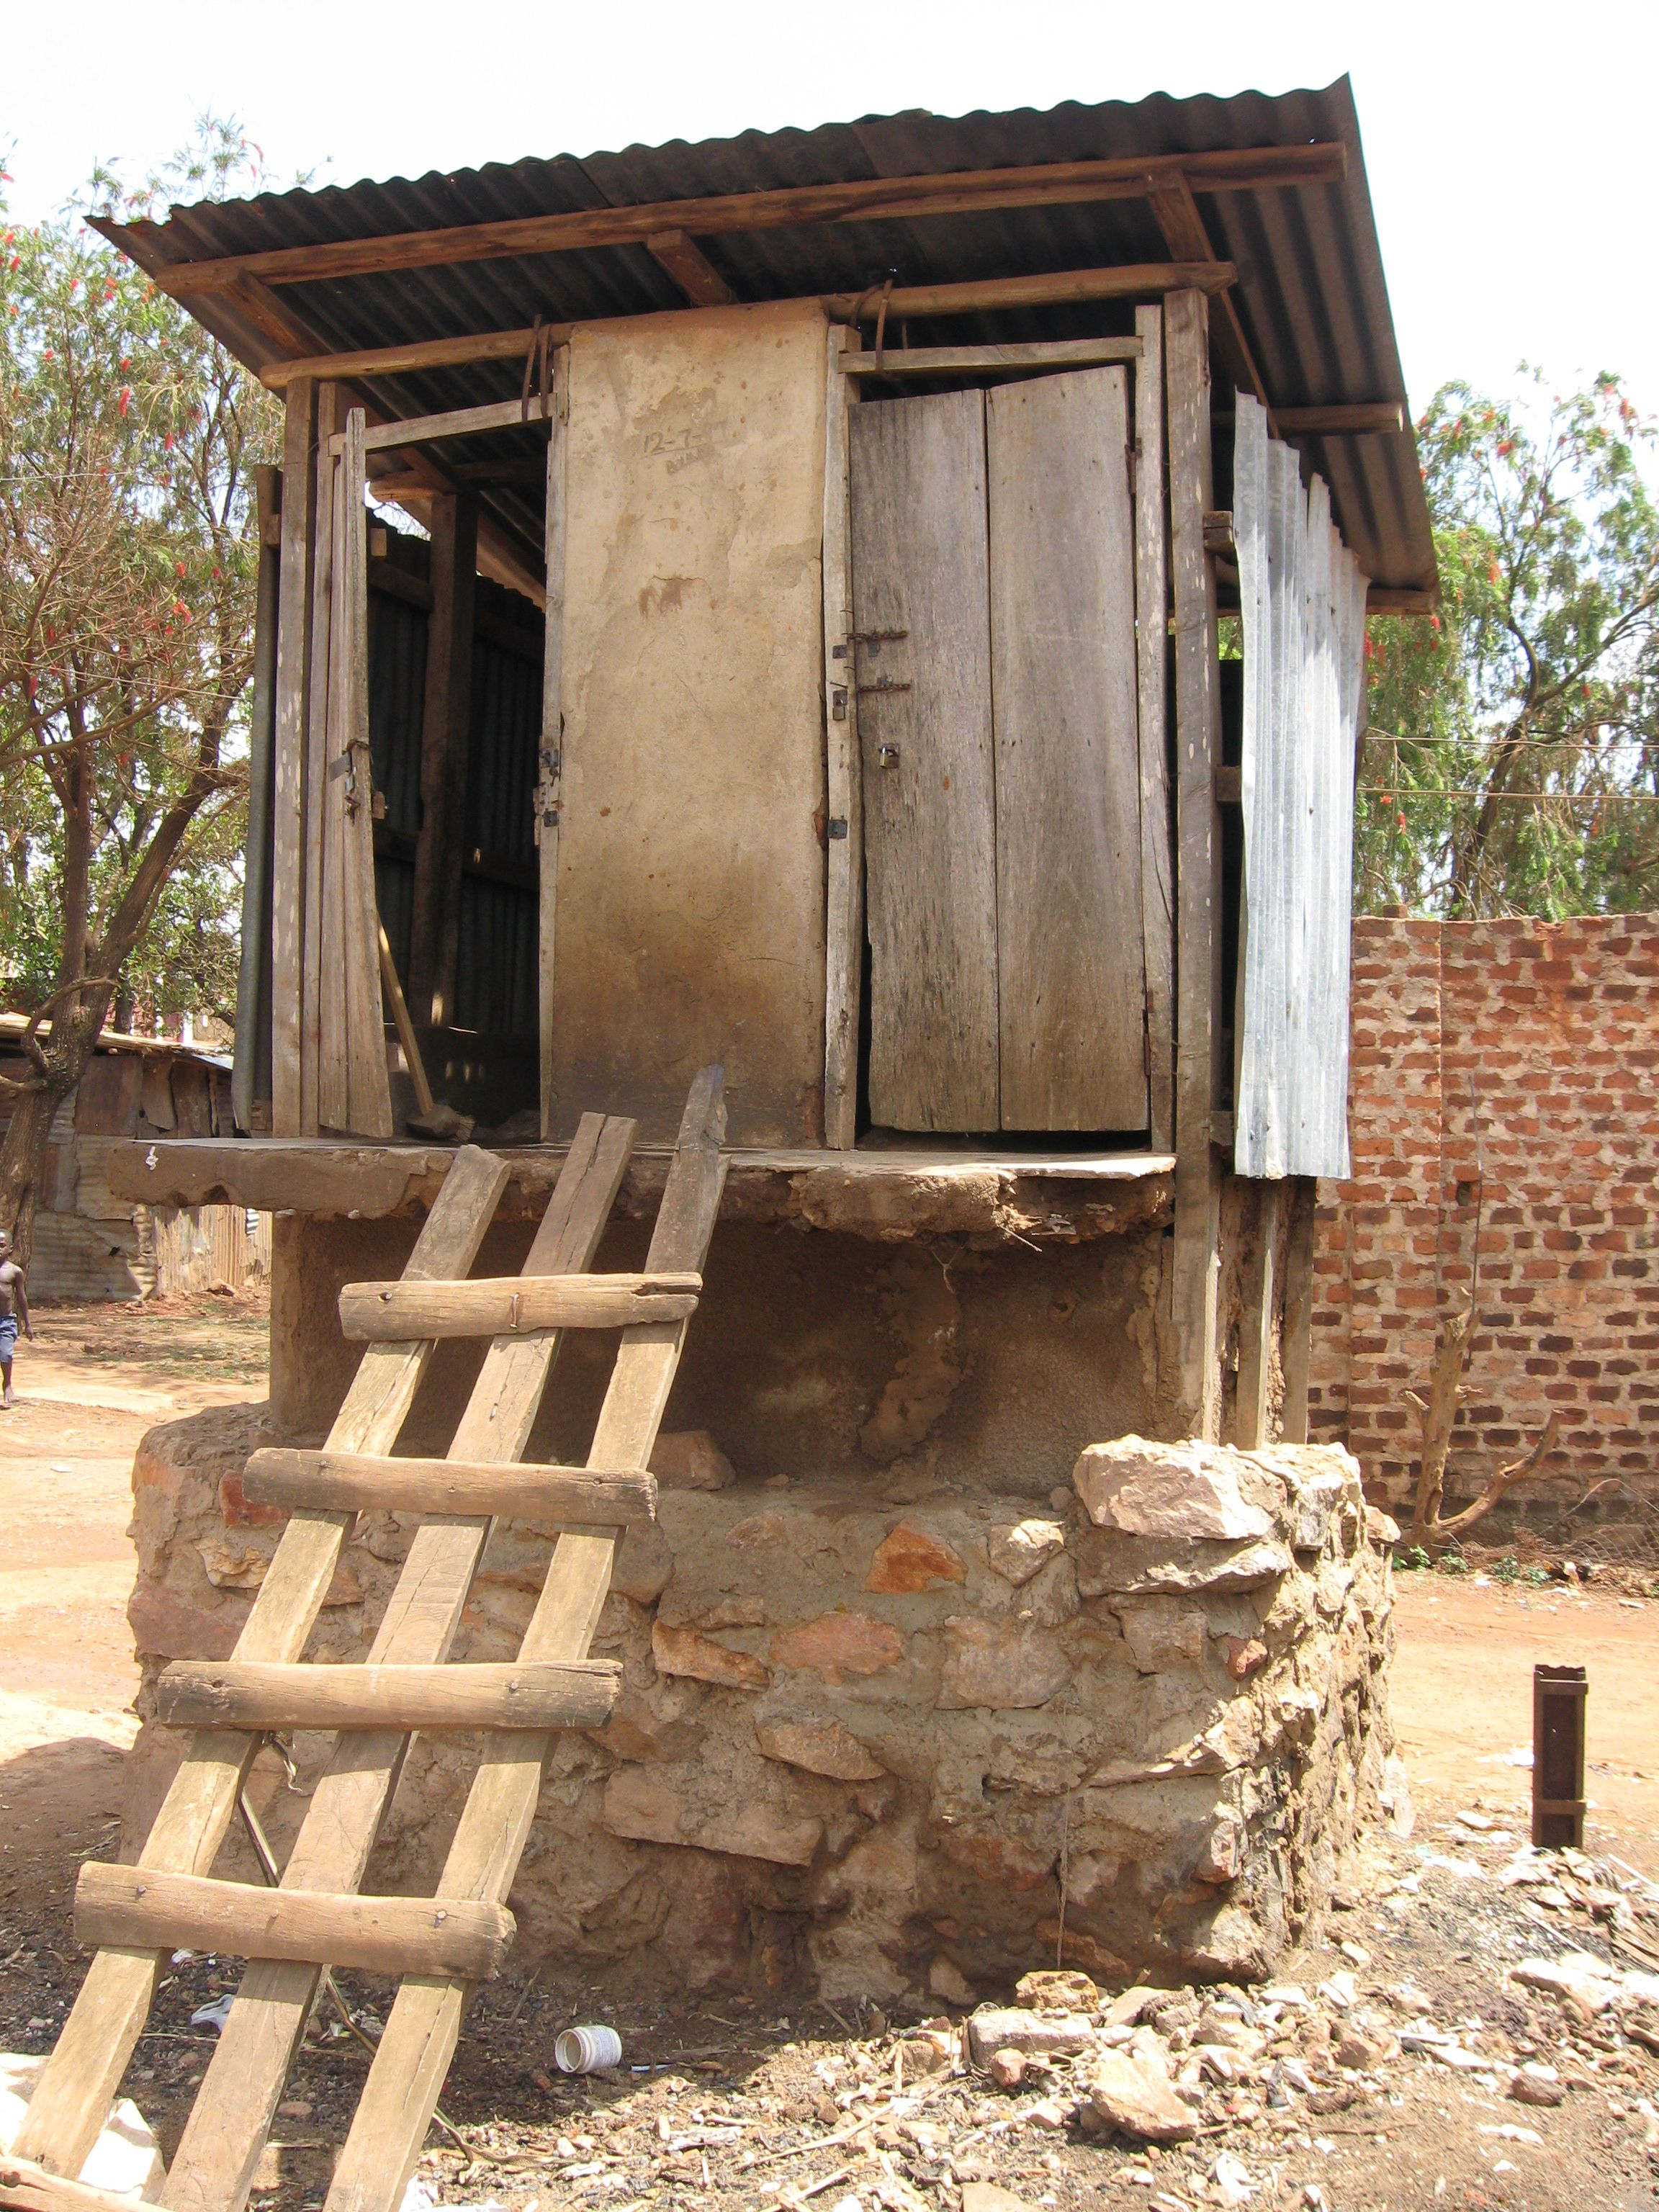 Pit Toilets Construction : This type of pit latrine is quite common in kampala slum